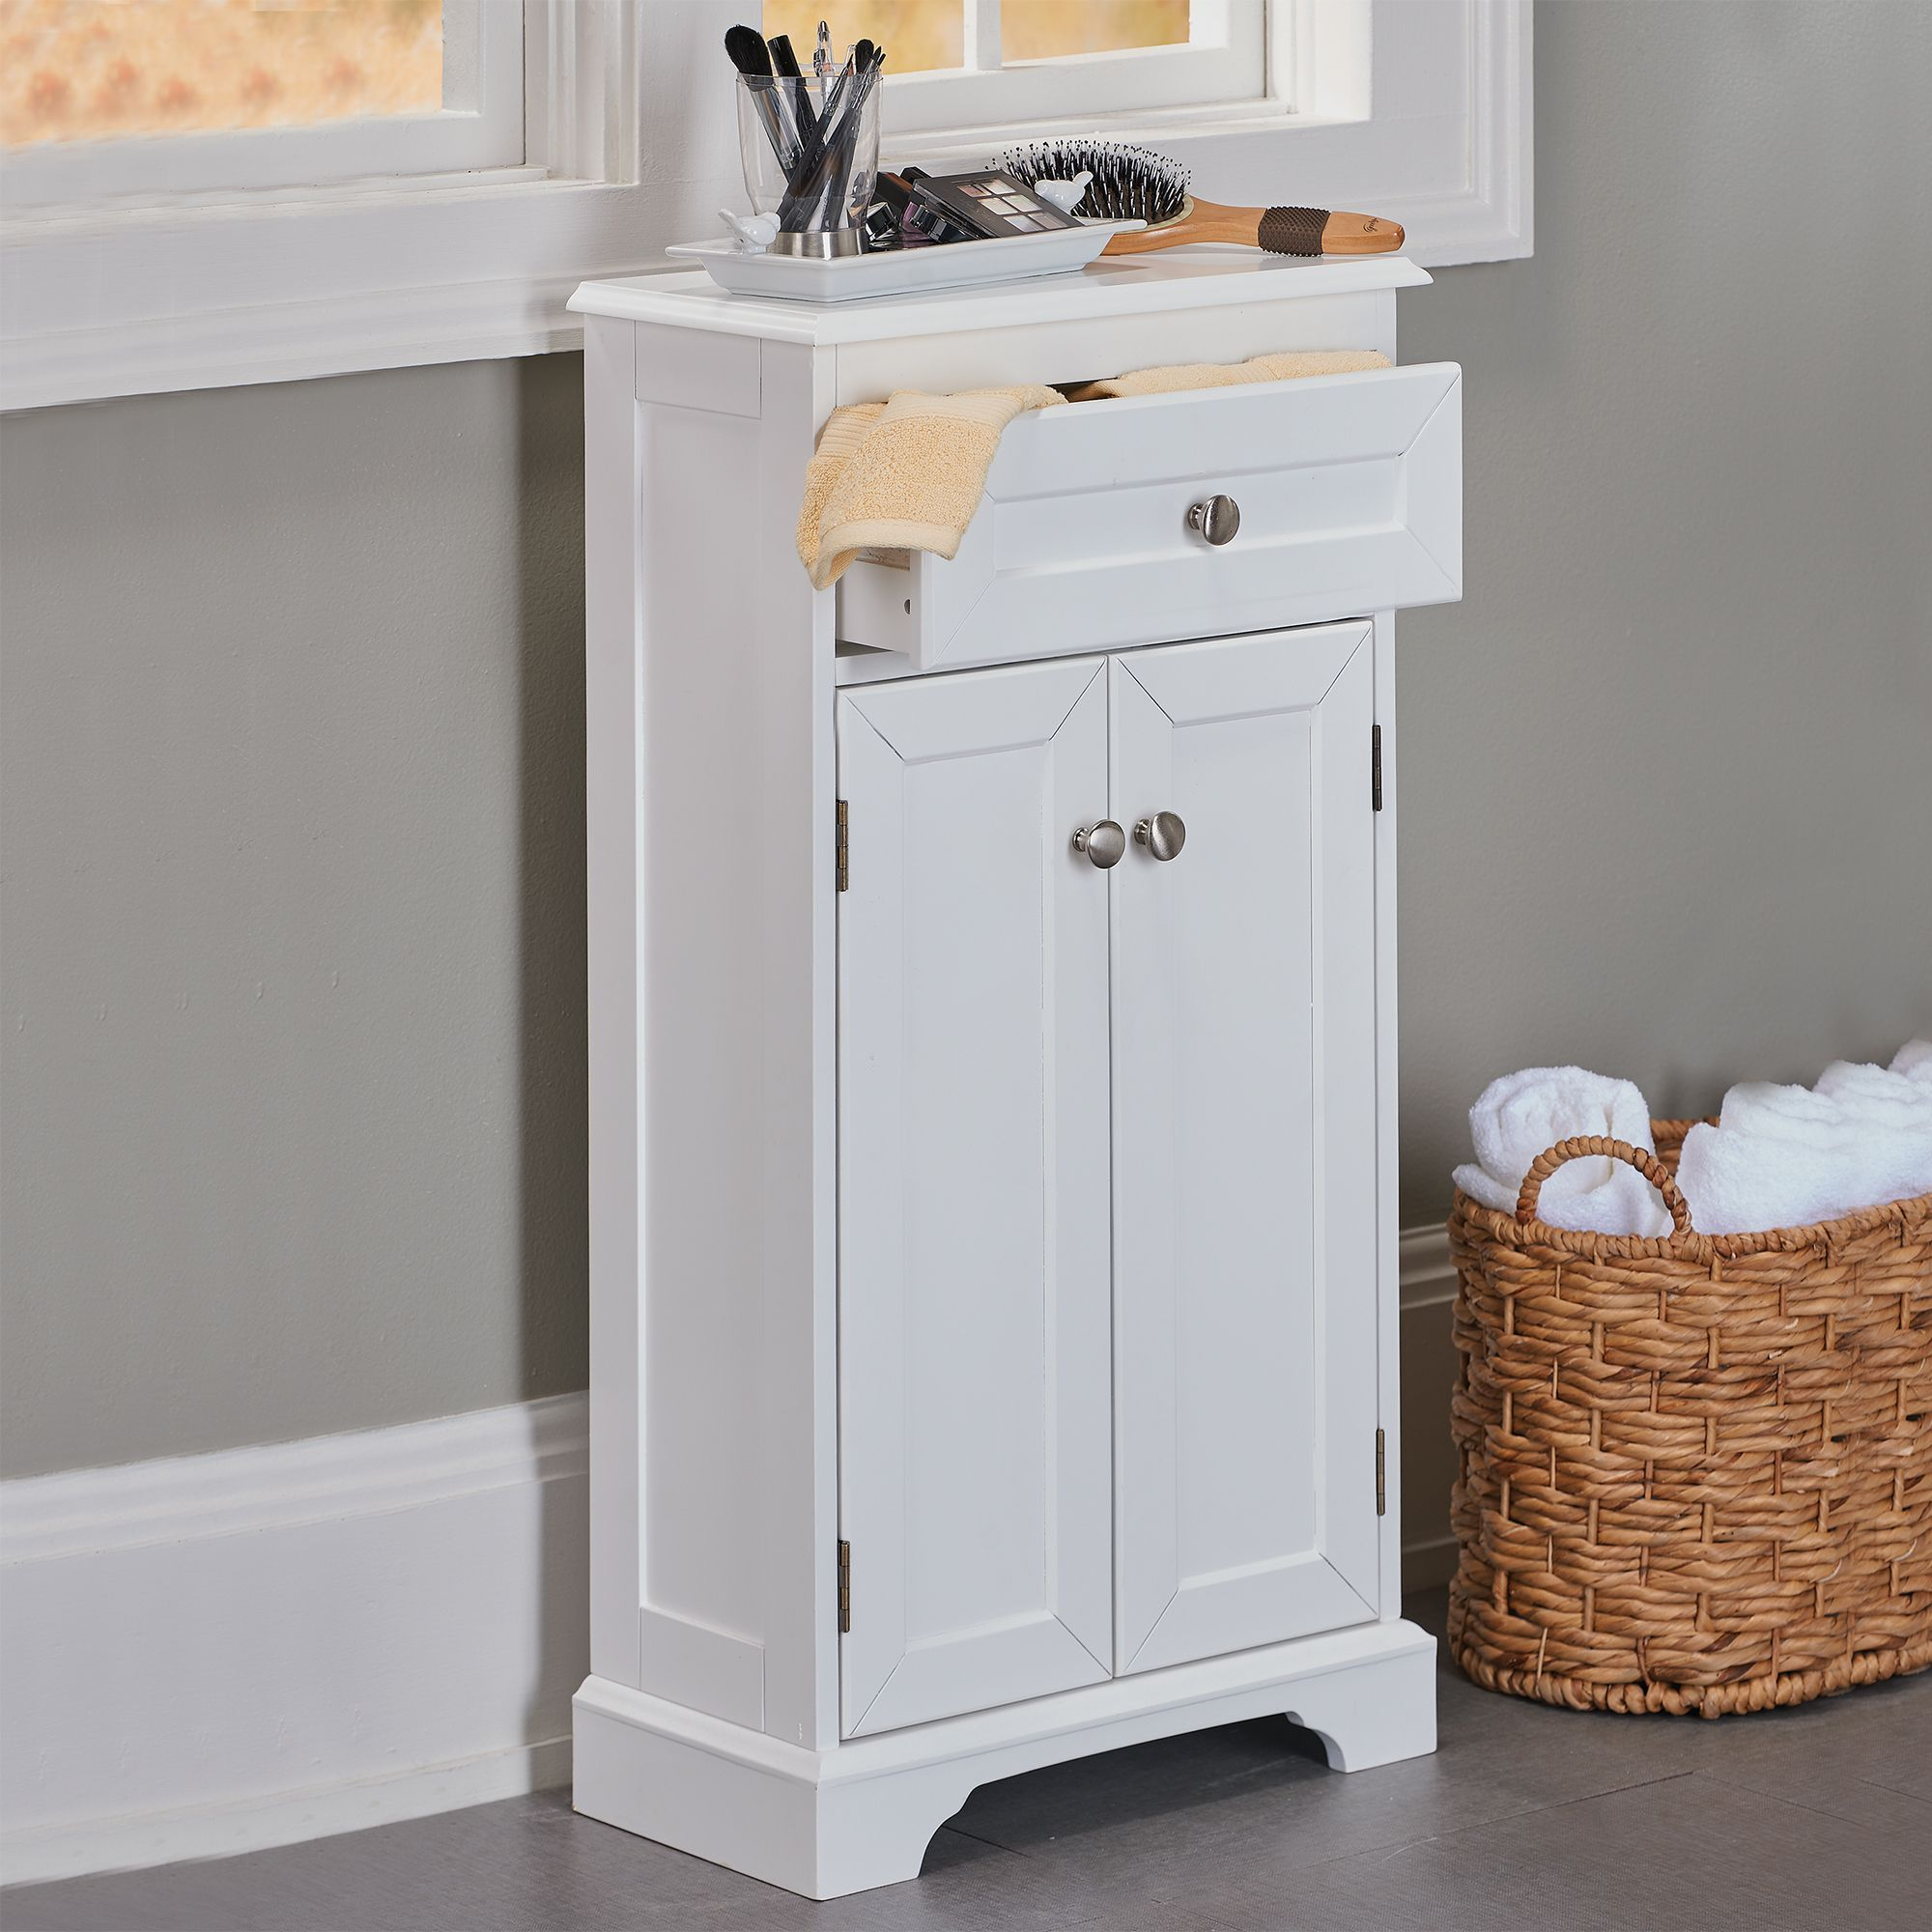 Its Slim Design And Small Stature Make It A Perfect Storage